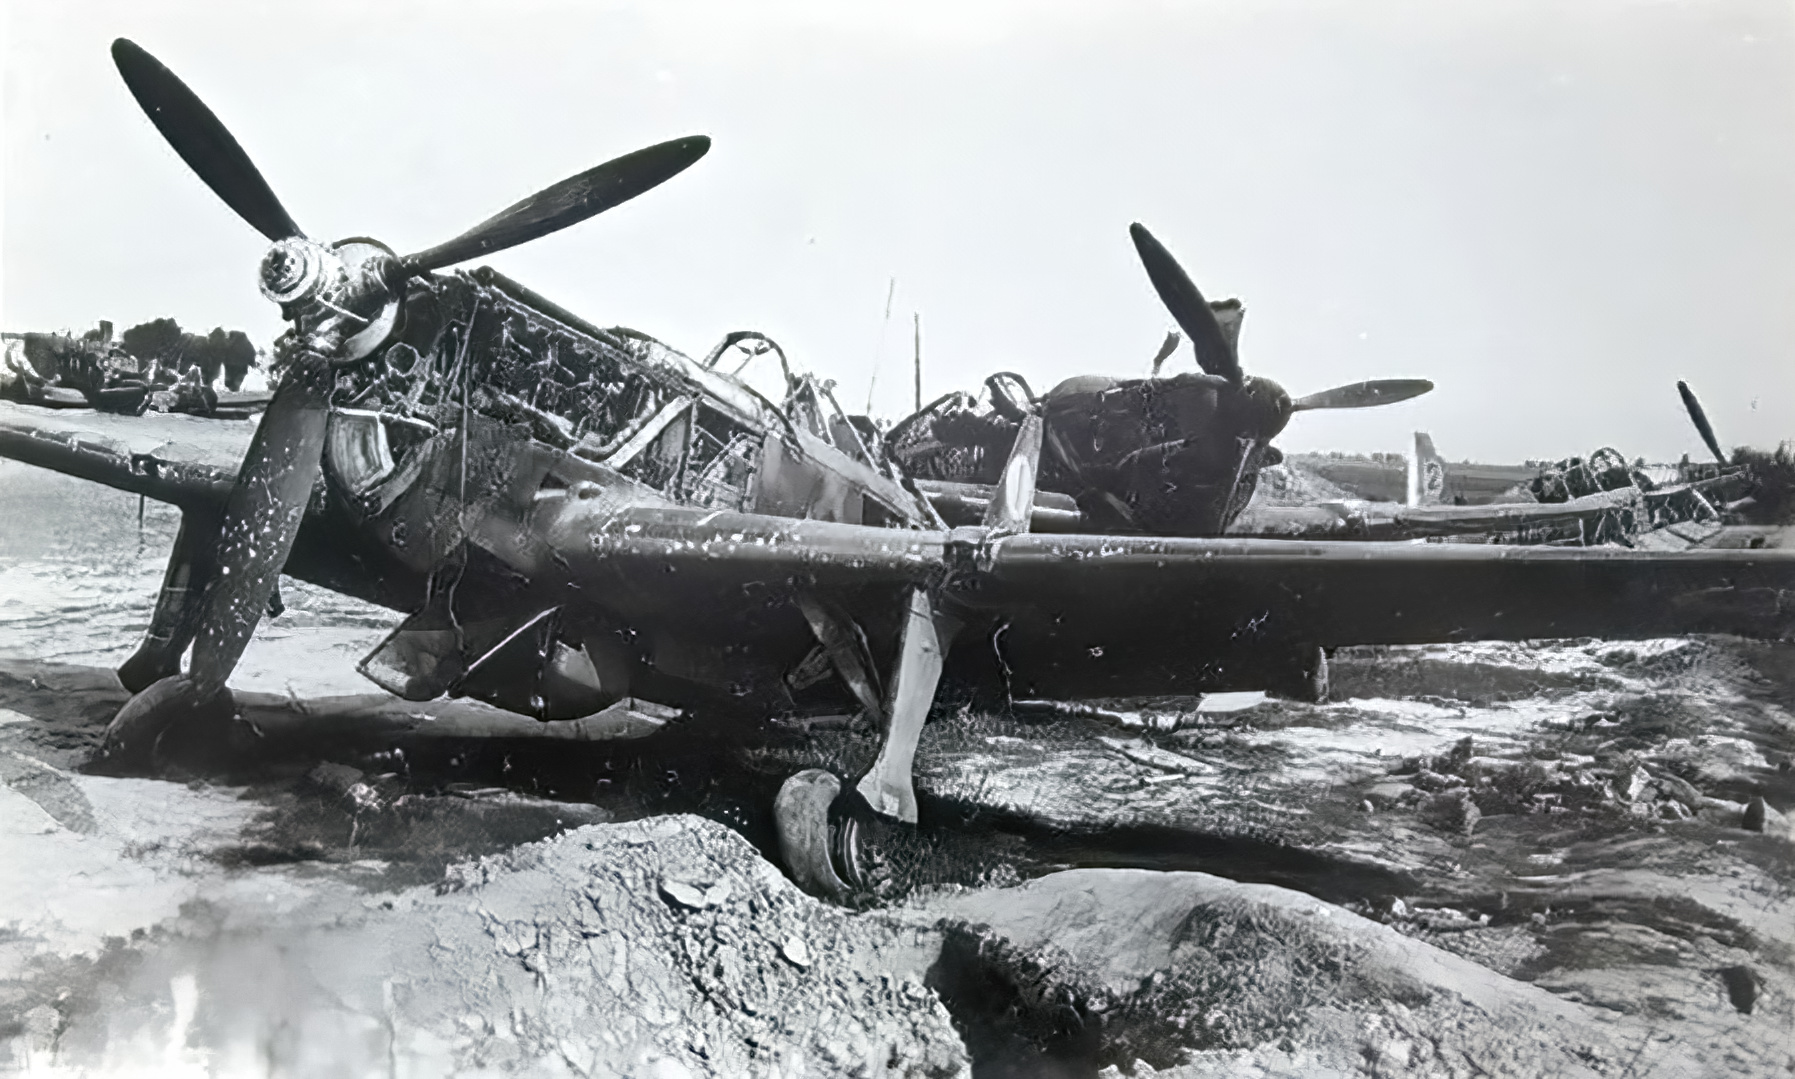 French Airforce Morane Saulnier MS 406C1 grounded at a French airbase France 1940 ebay 02